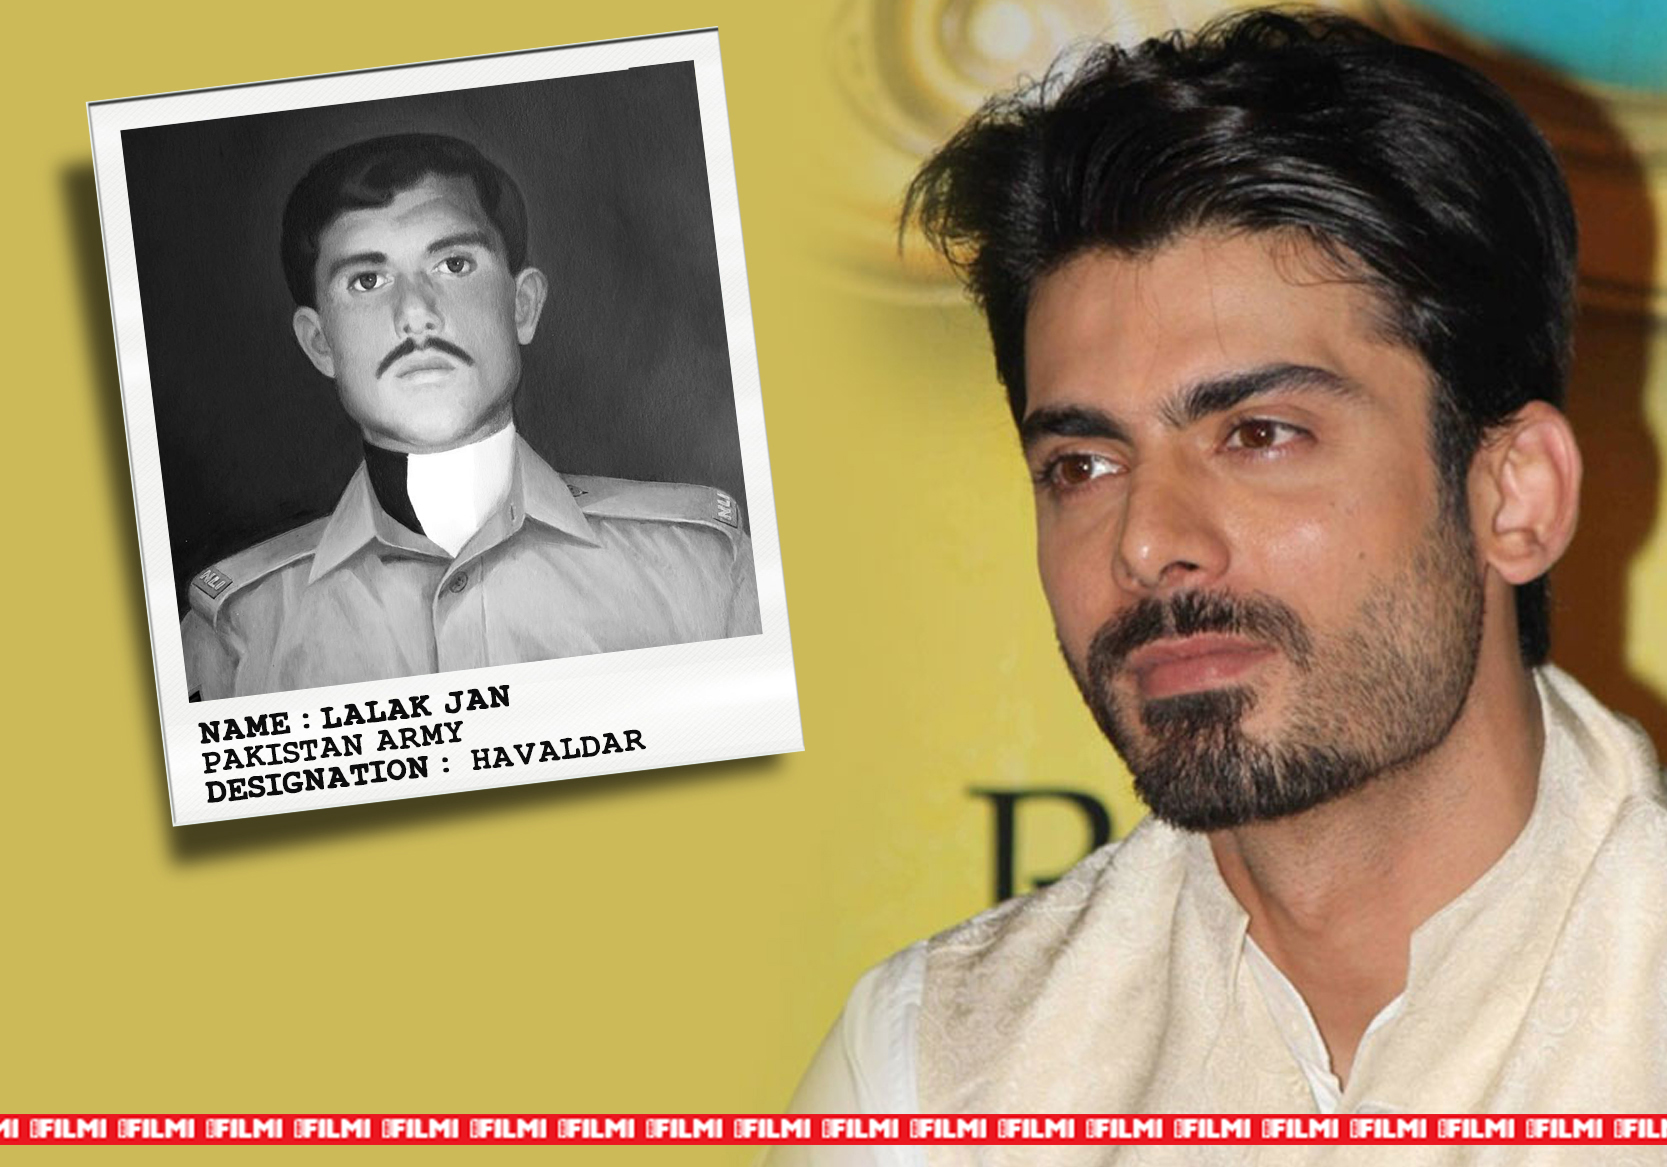 fawad khan as LALAK JAN